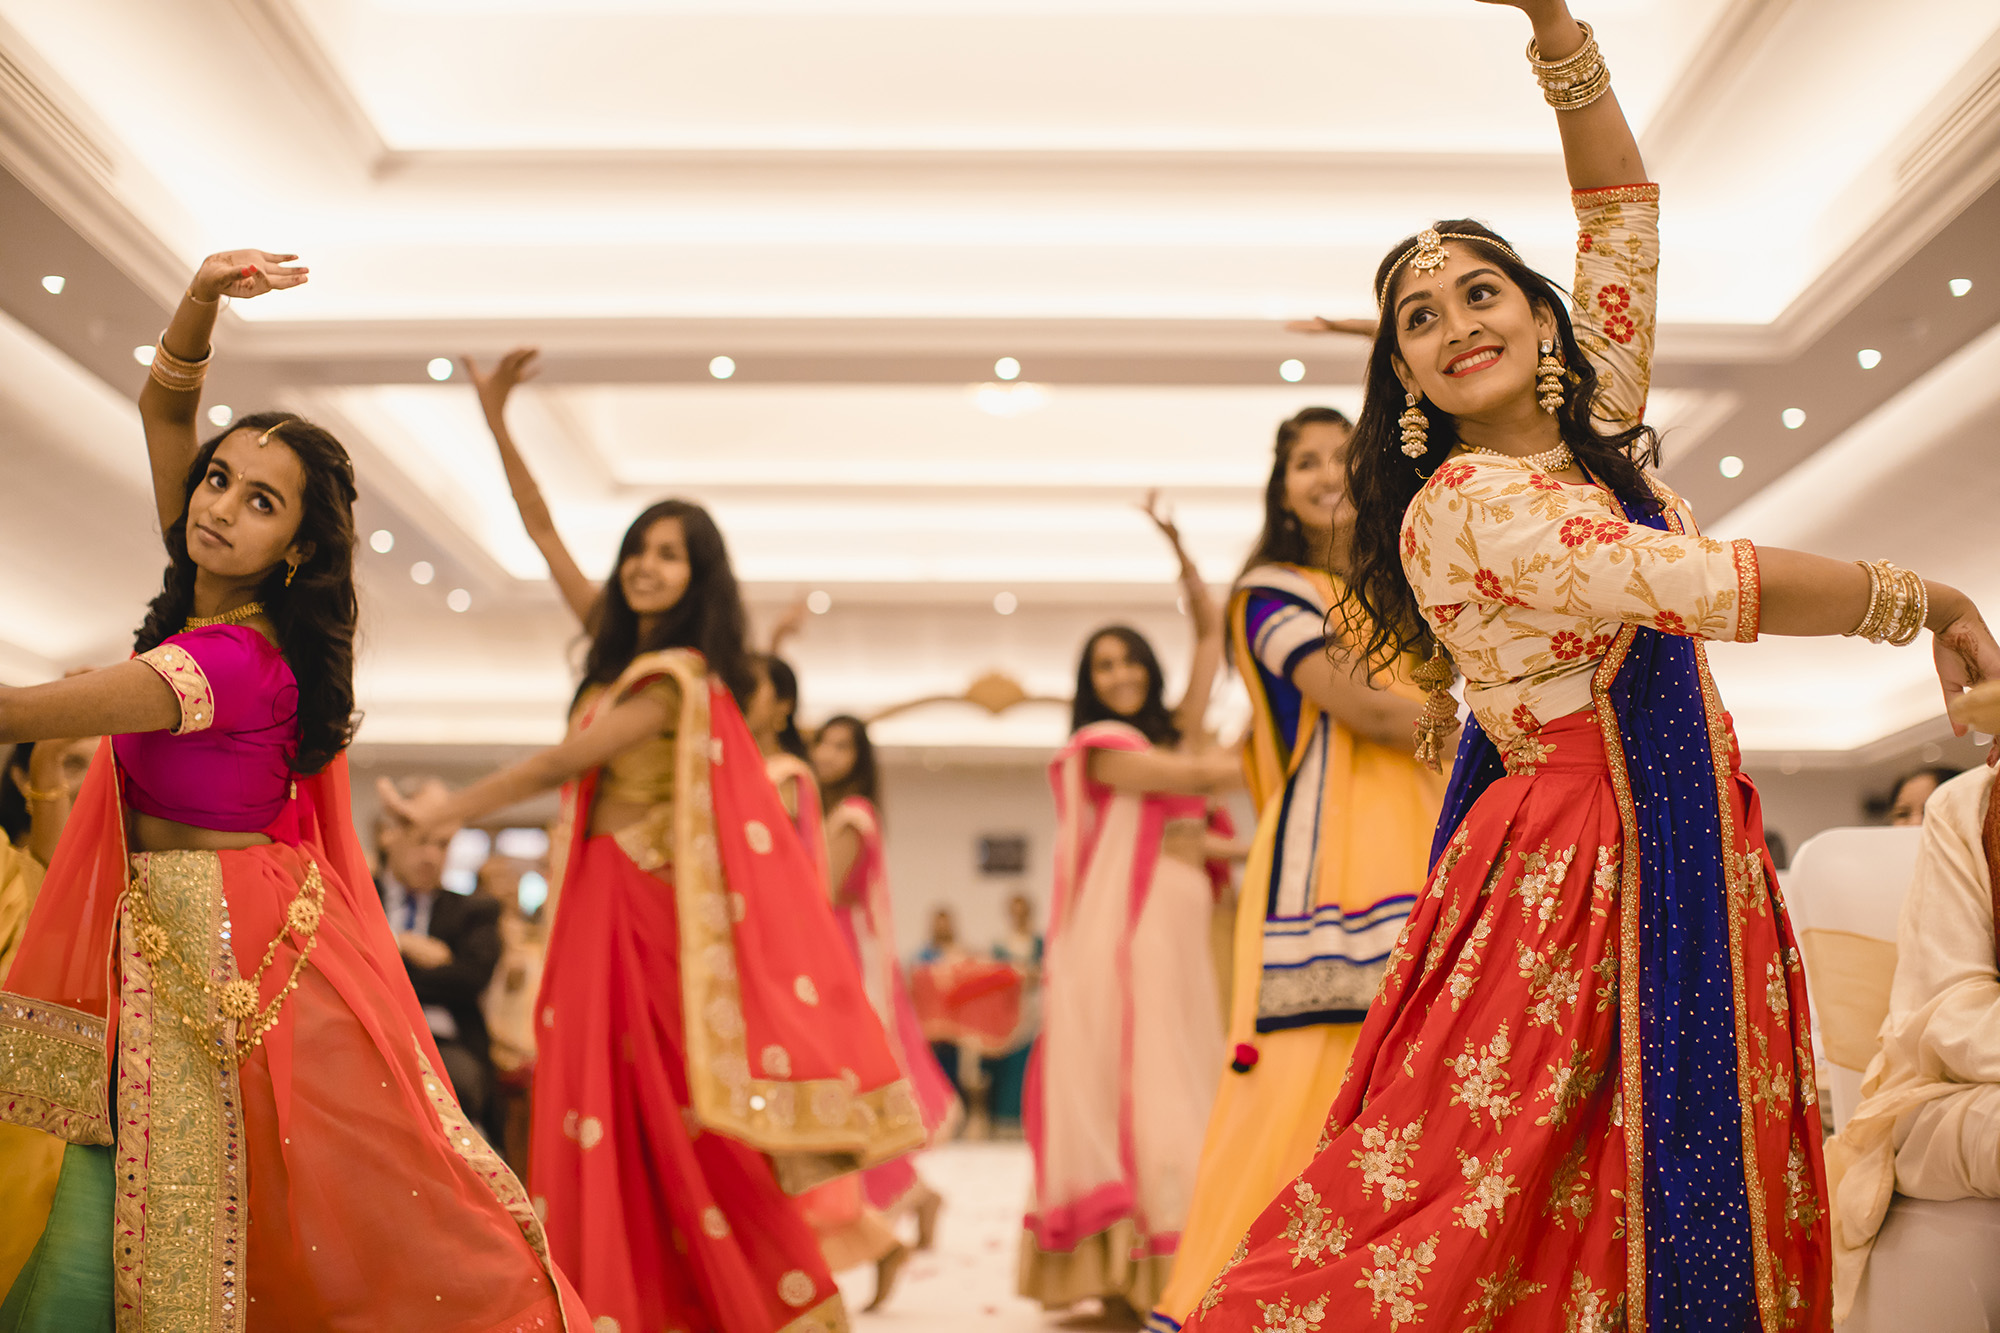 bridesmaids dancing in the aisle as the brides chunni is brought into the ceremony